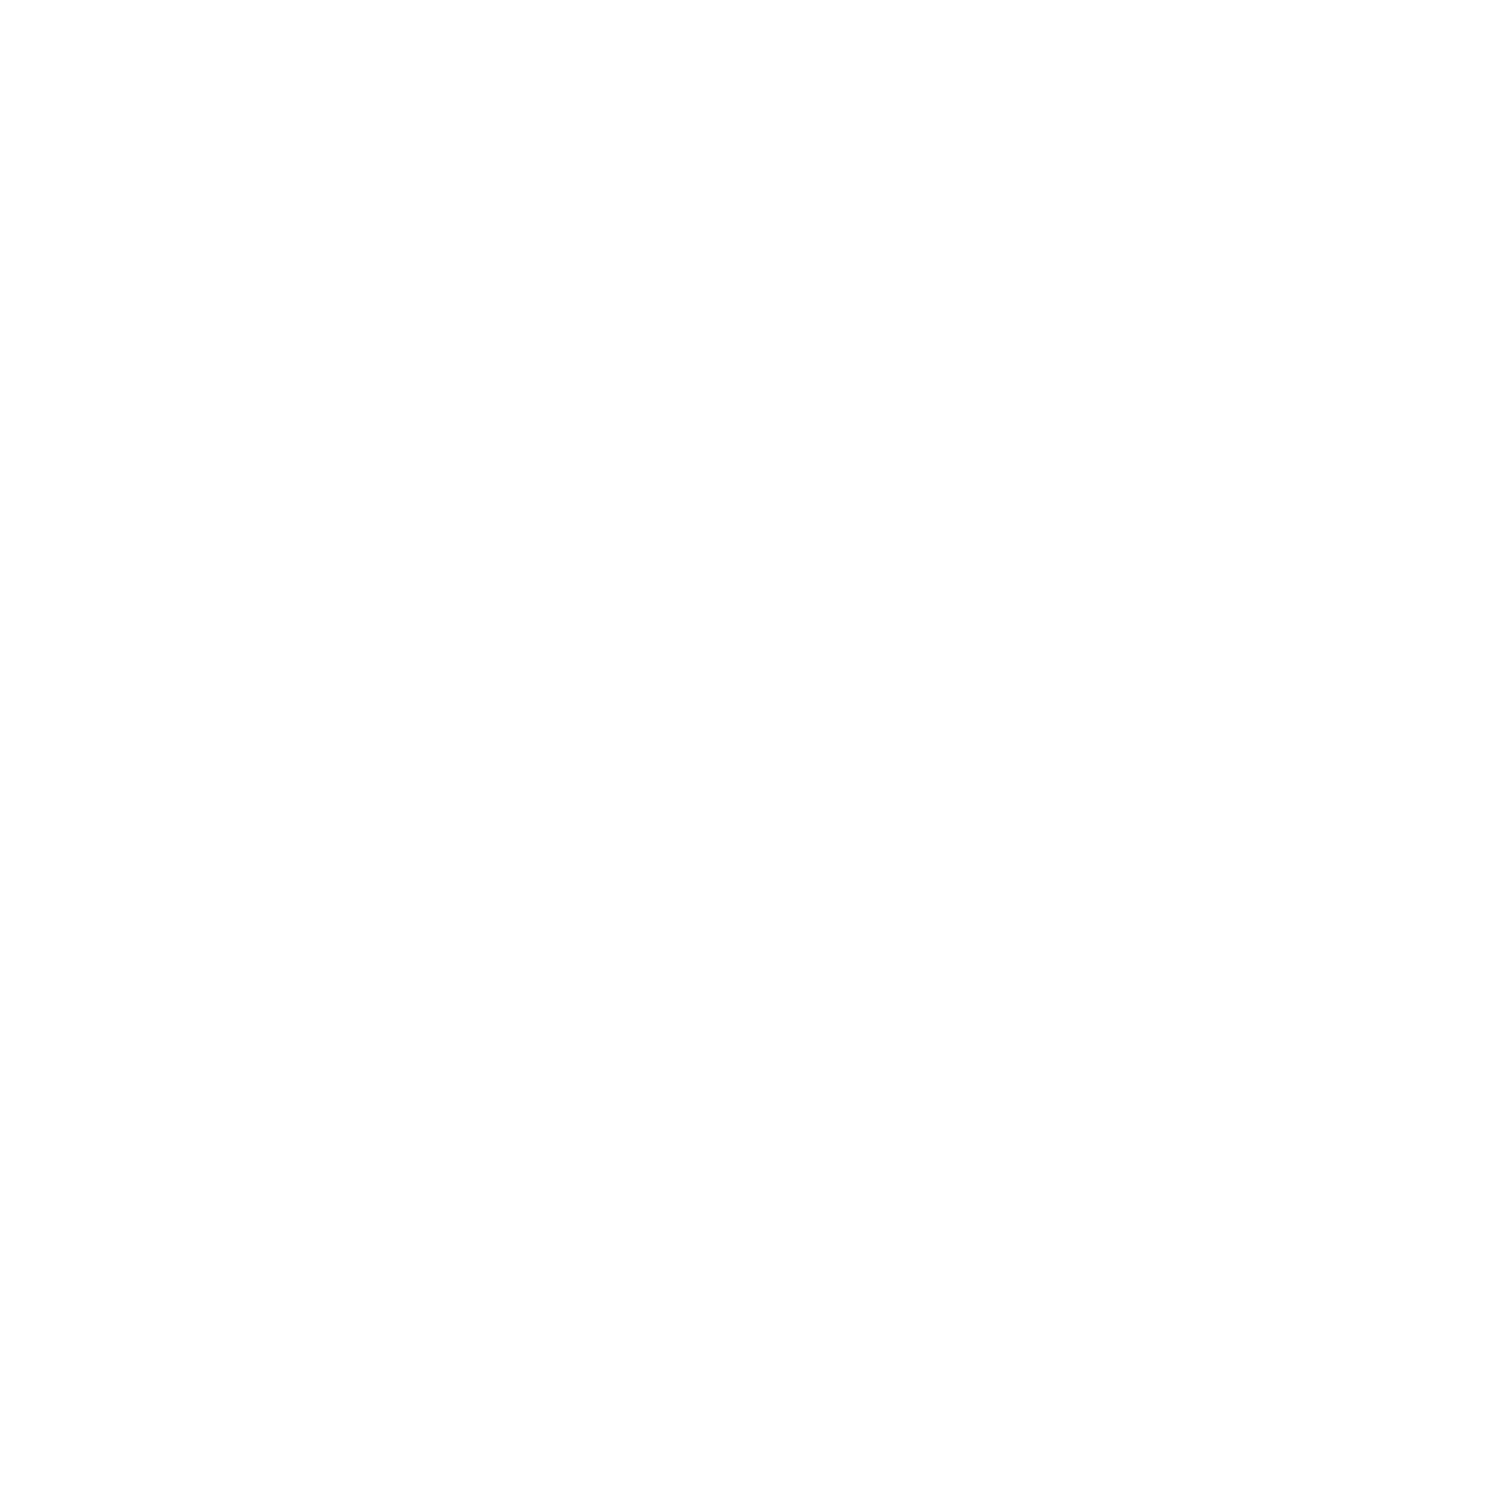 CASSANDRA MICHAELS